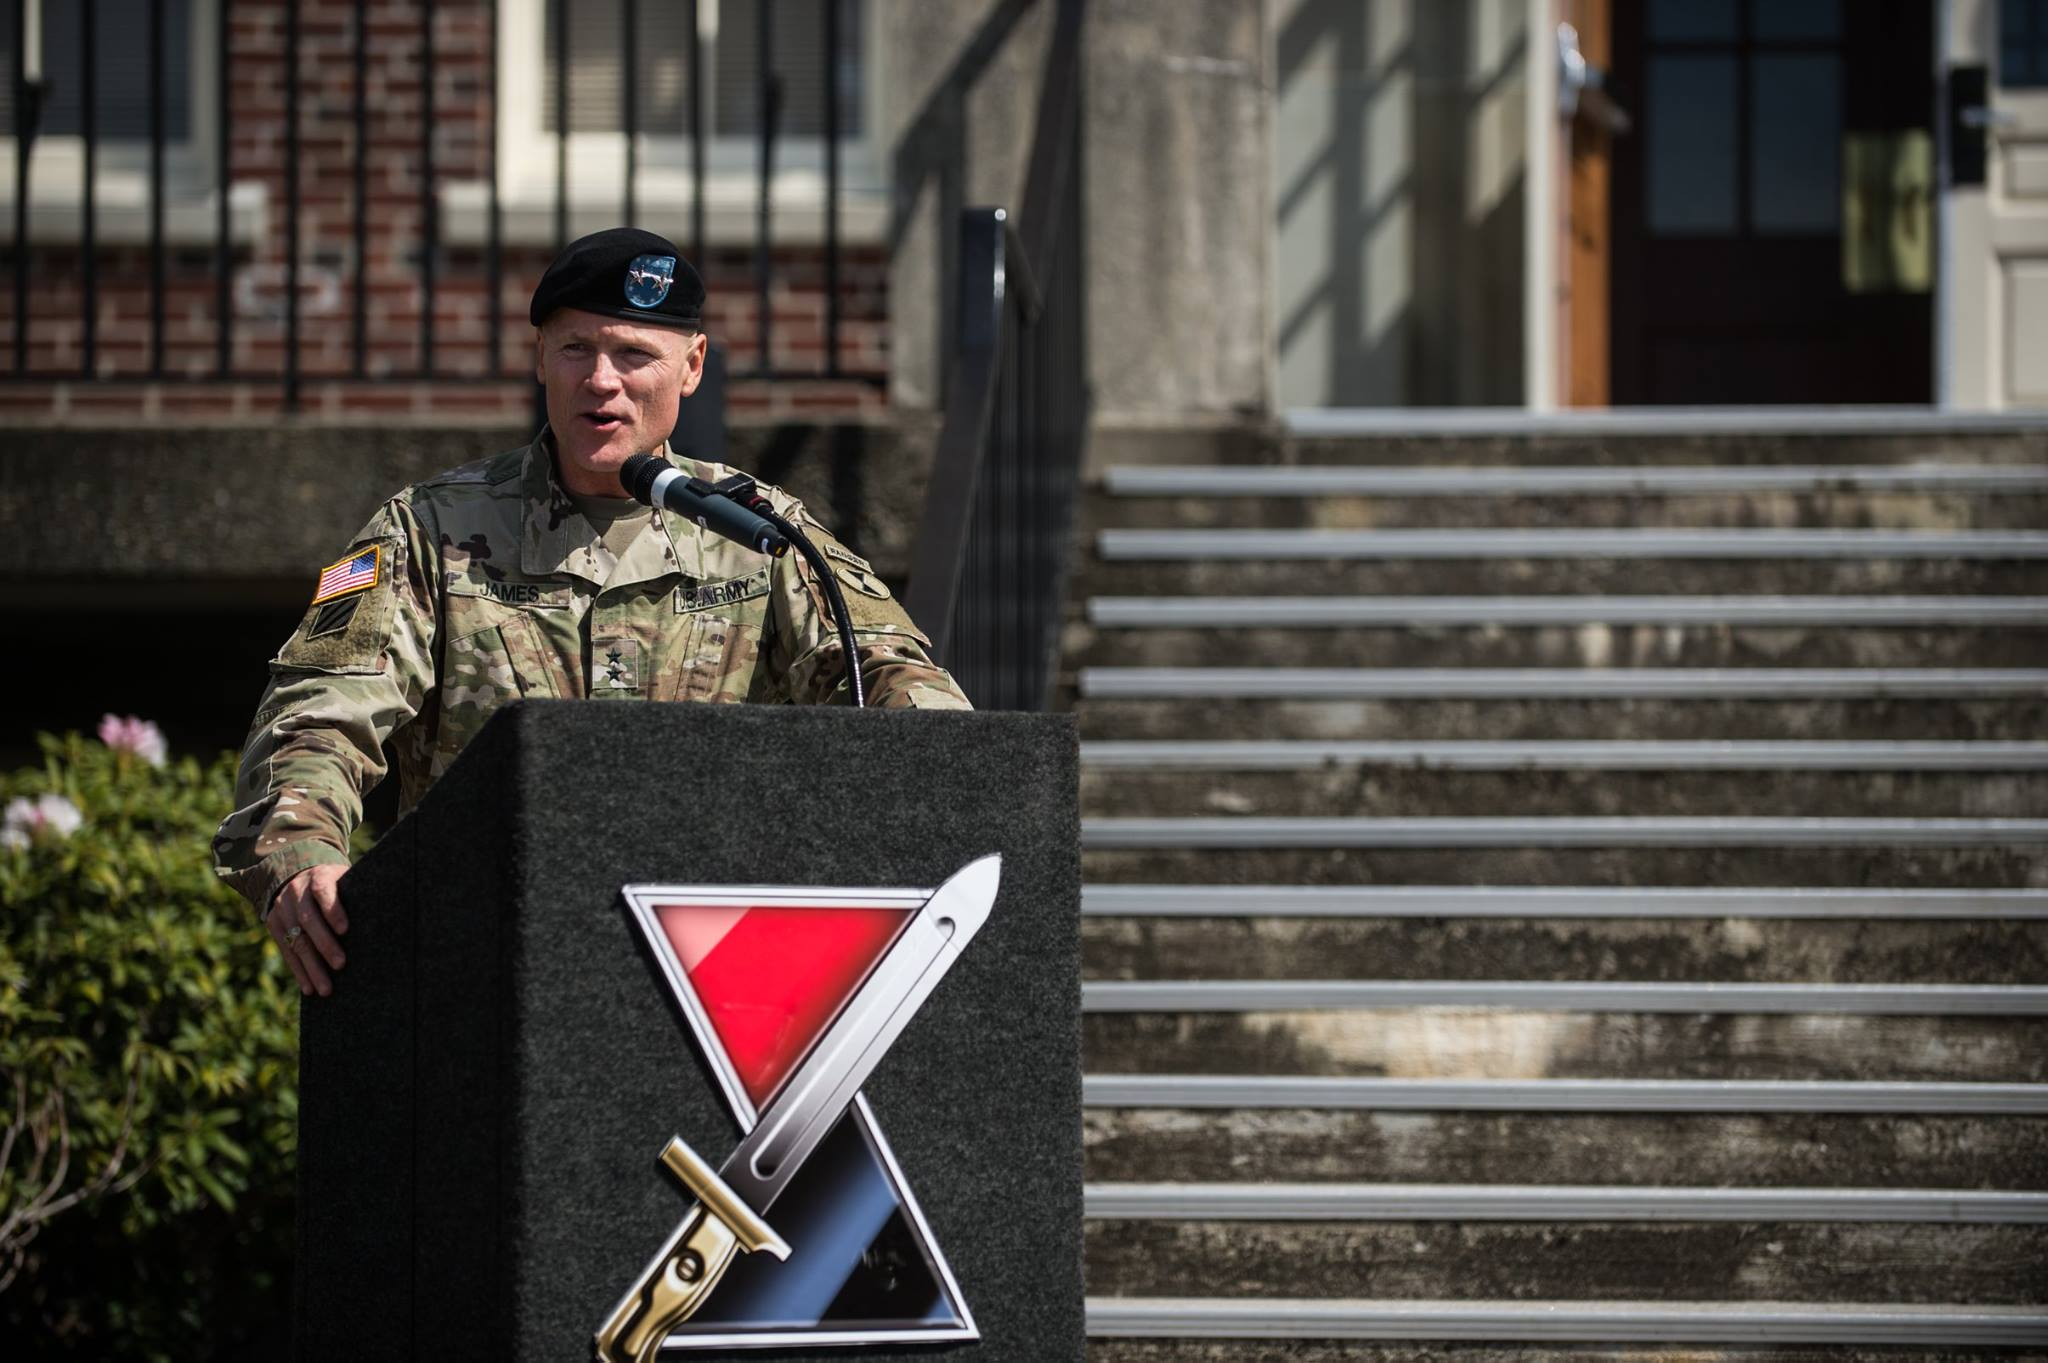 7th Infantry Division commander pulls organization together